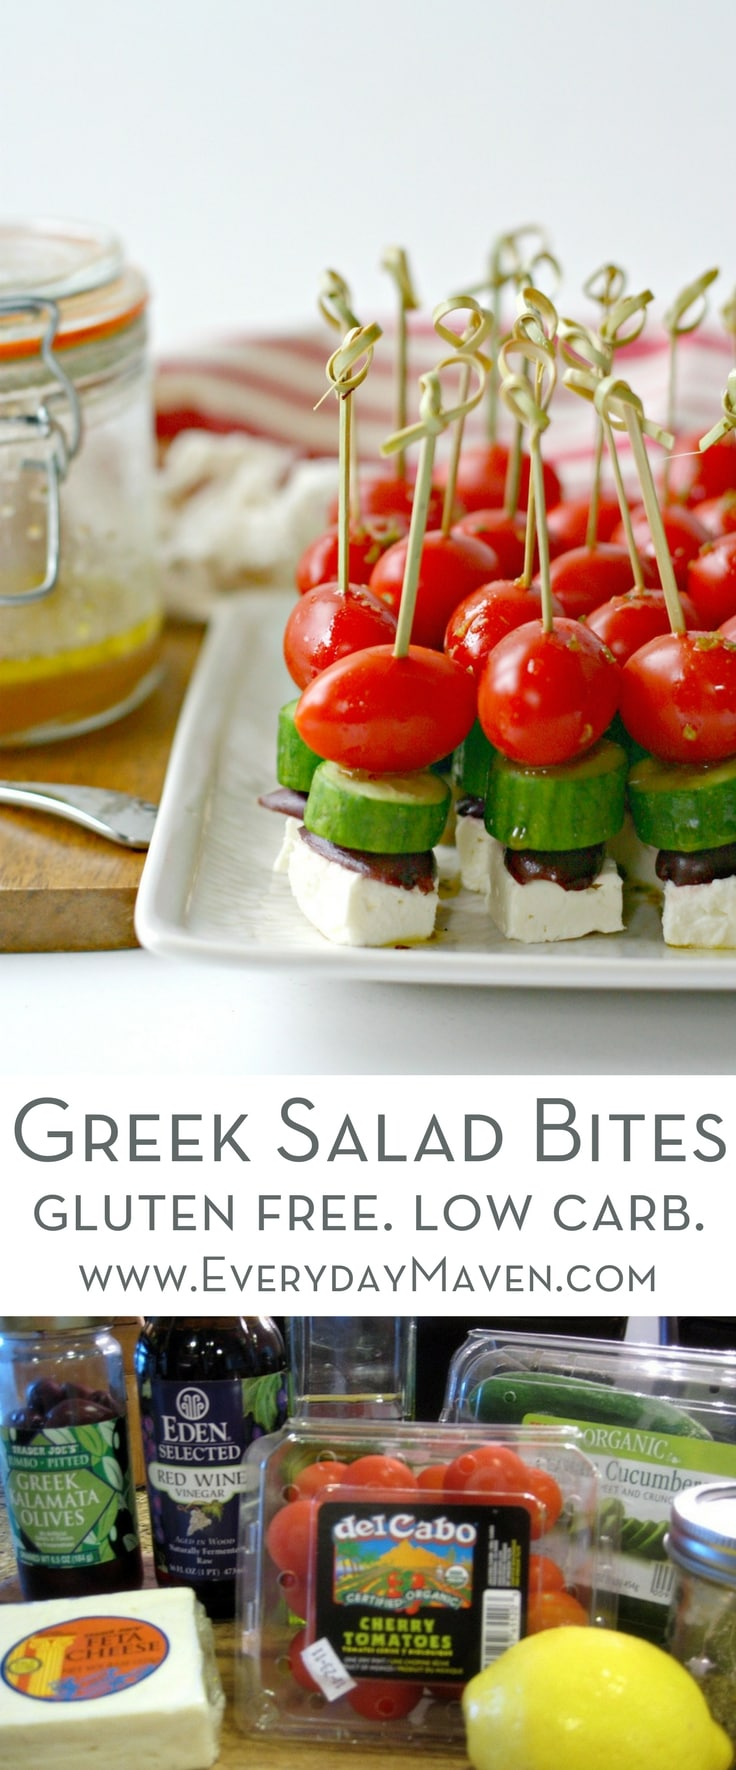 Greek Salad Bites are made with simple ingredients and have big flavor. A fun appetizer that is naturally low carb, gluten free and vegetarian!are made with simple ingredients and have big flavor. A fun appetizer that is naturally low carb, gluten free and vegetarian!